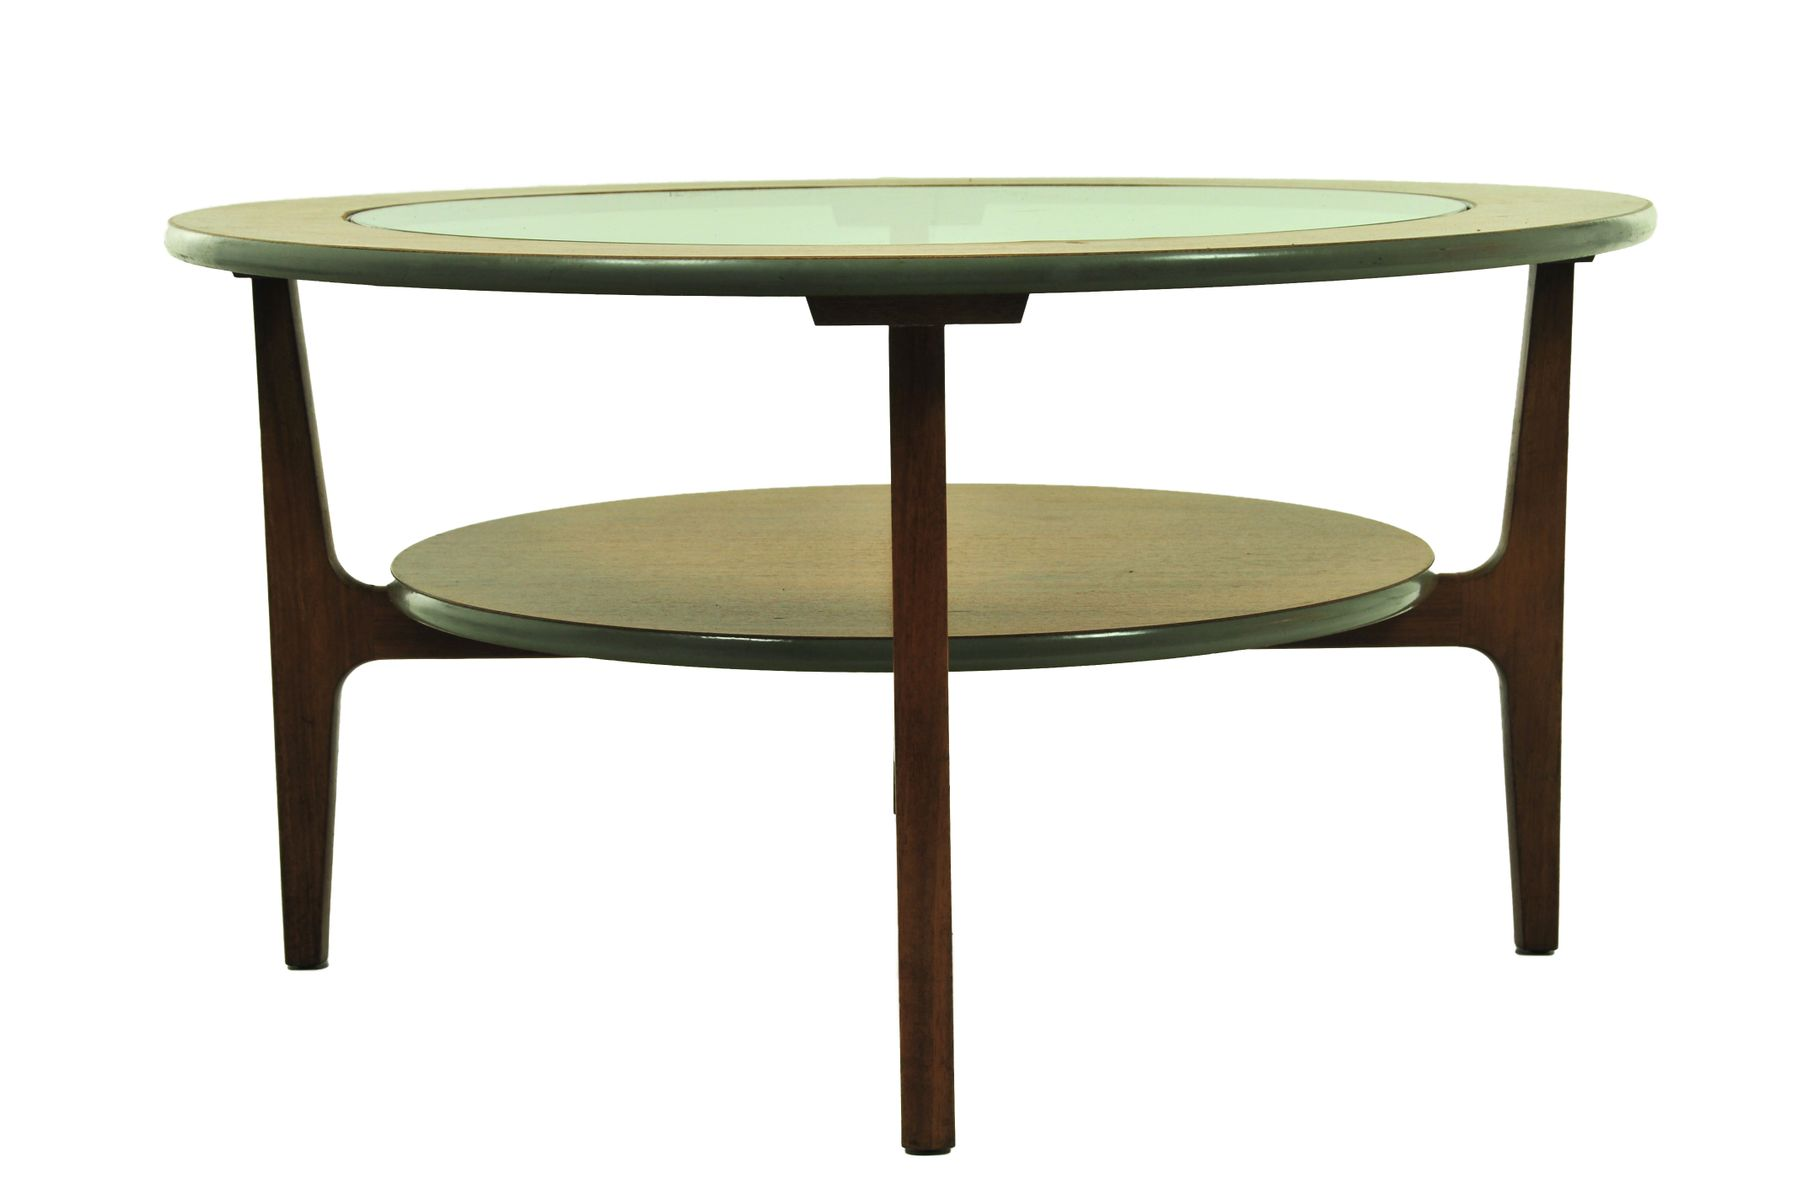 table basse vintage ronde avec plateau en verre 1960s en vente sur pamono. Black Bedroom Furniture Sets. Home Design Ideas